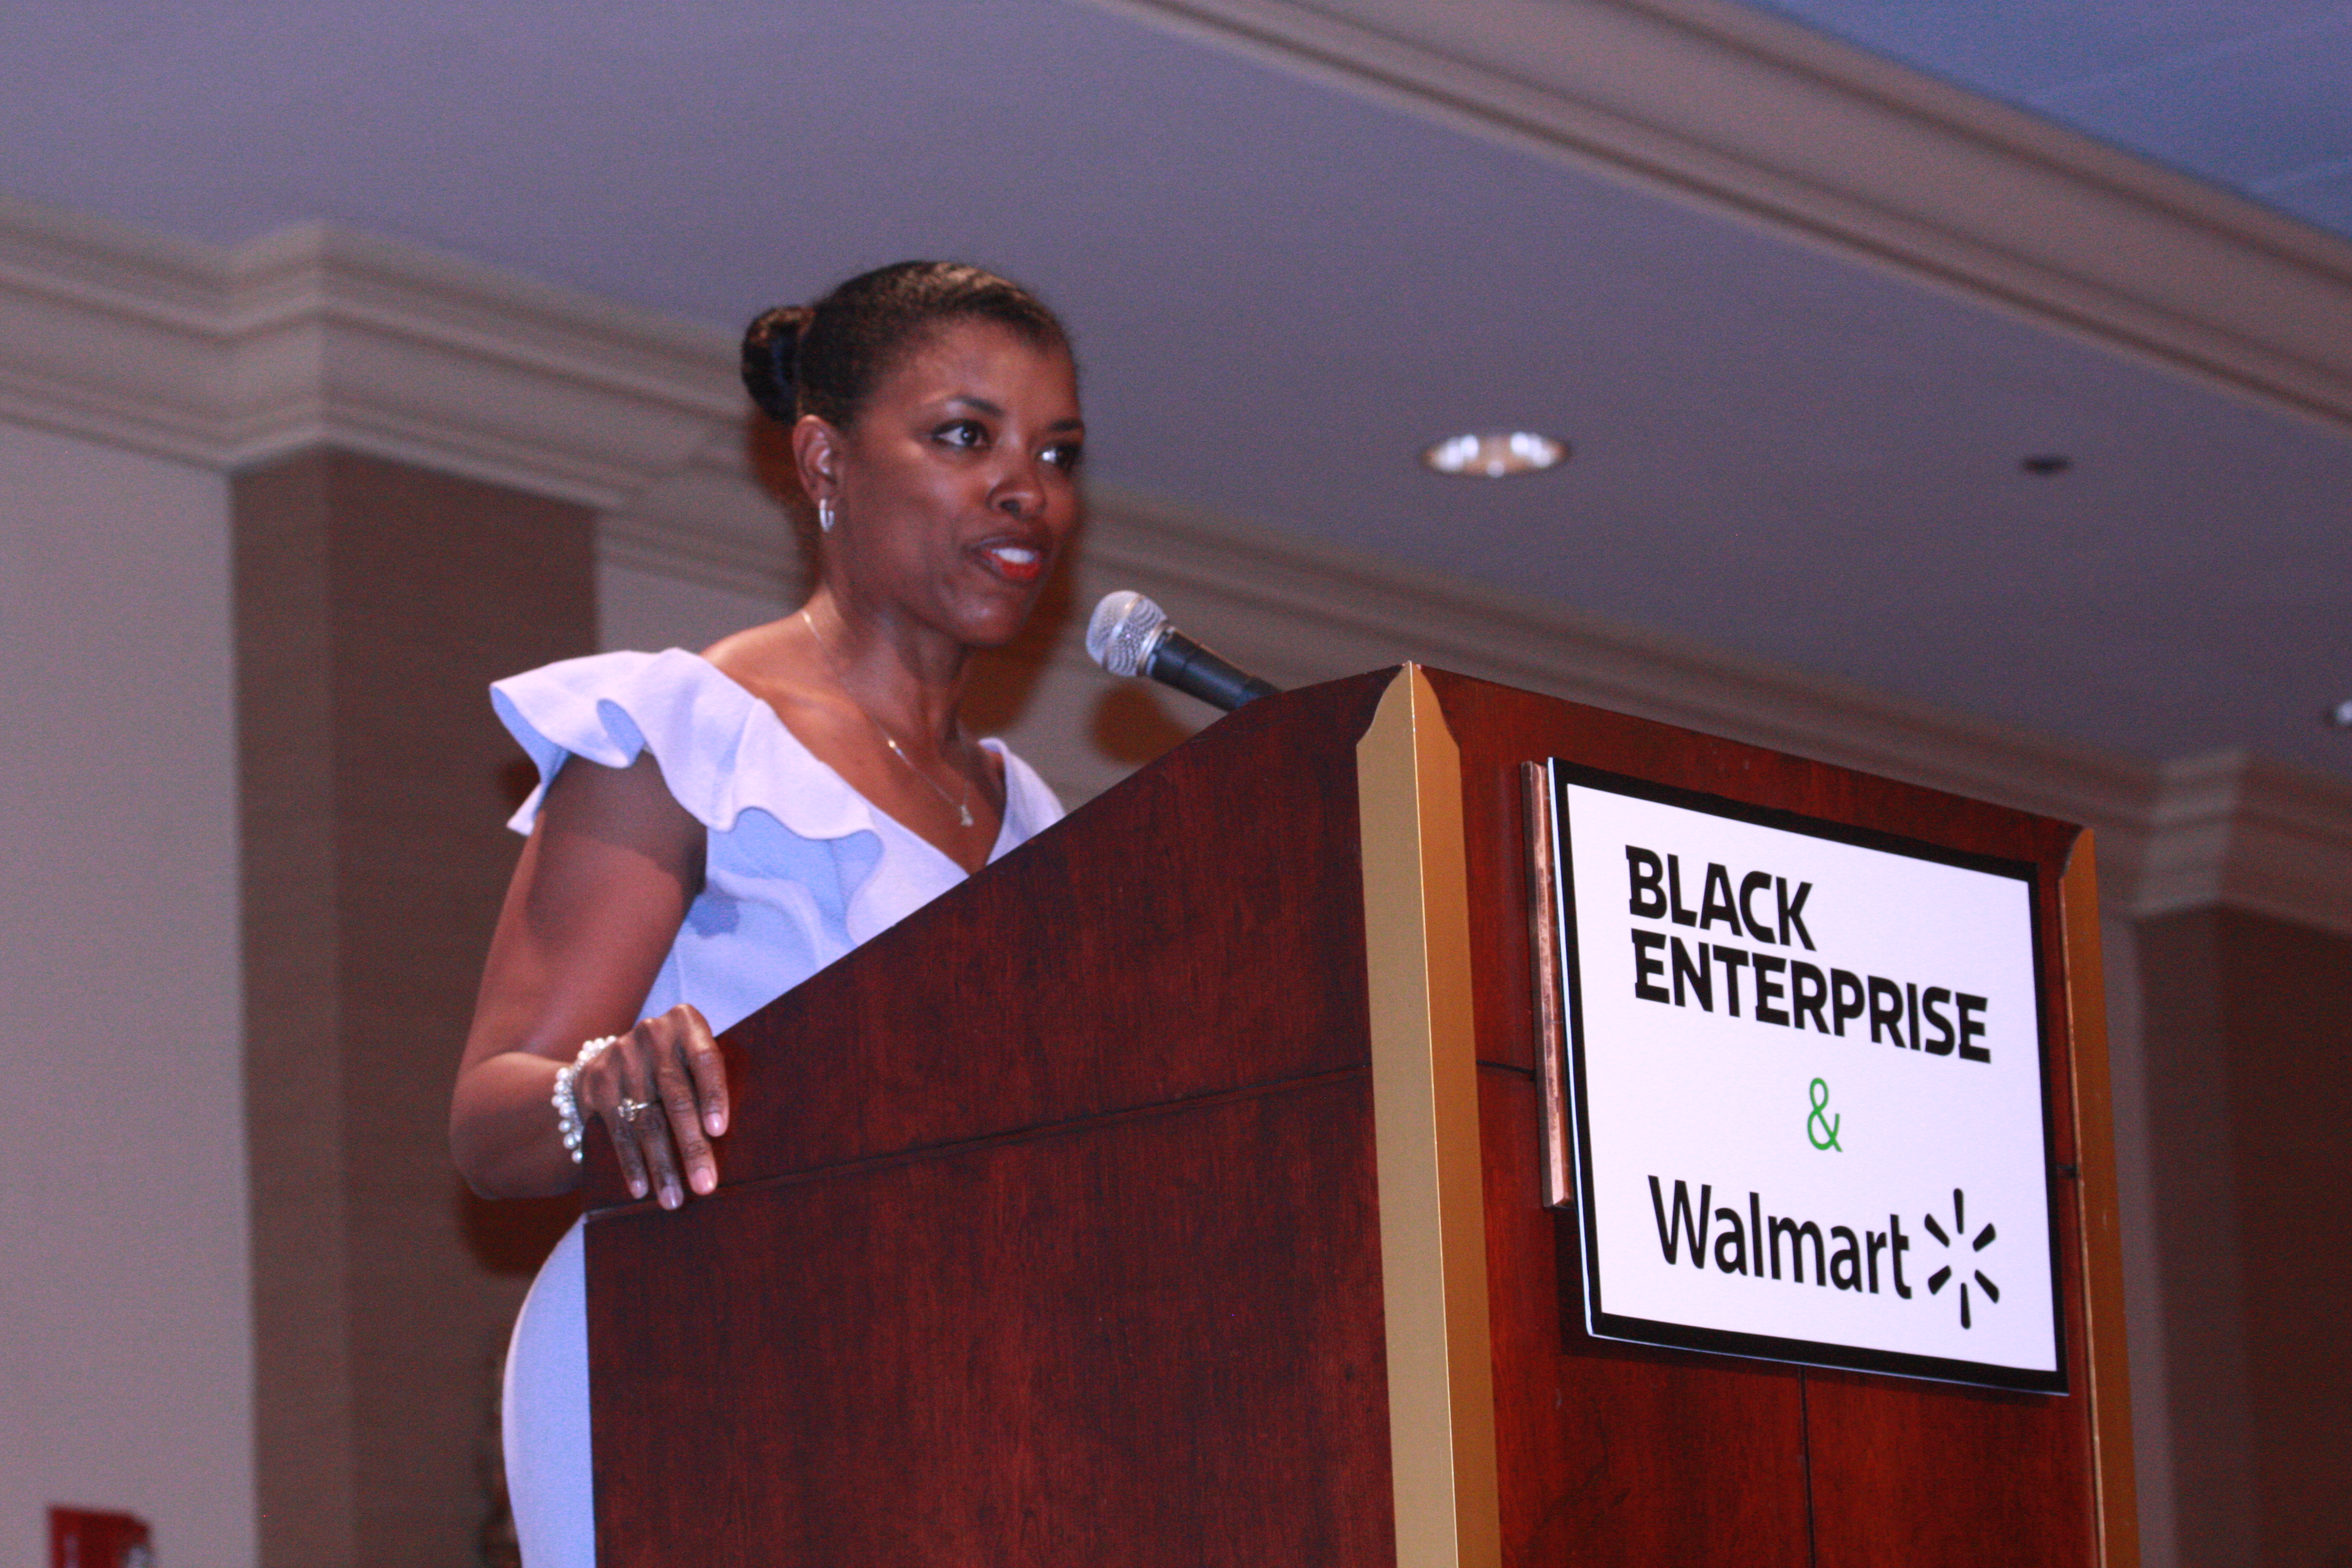 """The event began with opening remarks from Black Enterprise President and CEO, Earl """"Butch"""" Graves Jr.; Stephanie Neely, City of Chicago Treasurer (Pictured here); and Reginald Reese, Market Manager for Northern Illinois Walmart stores."""